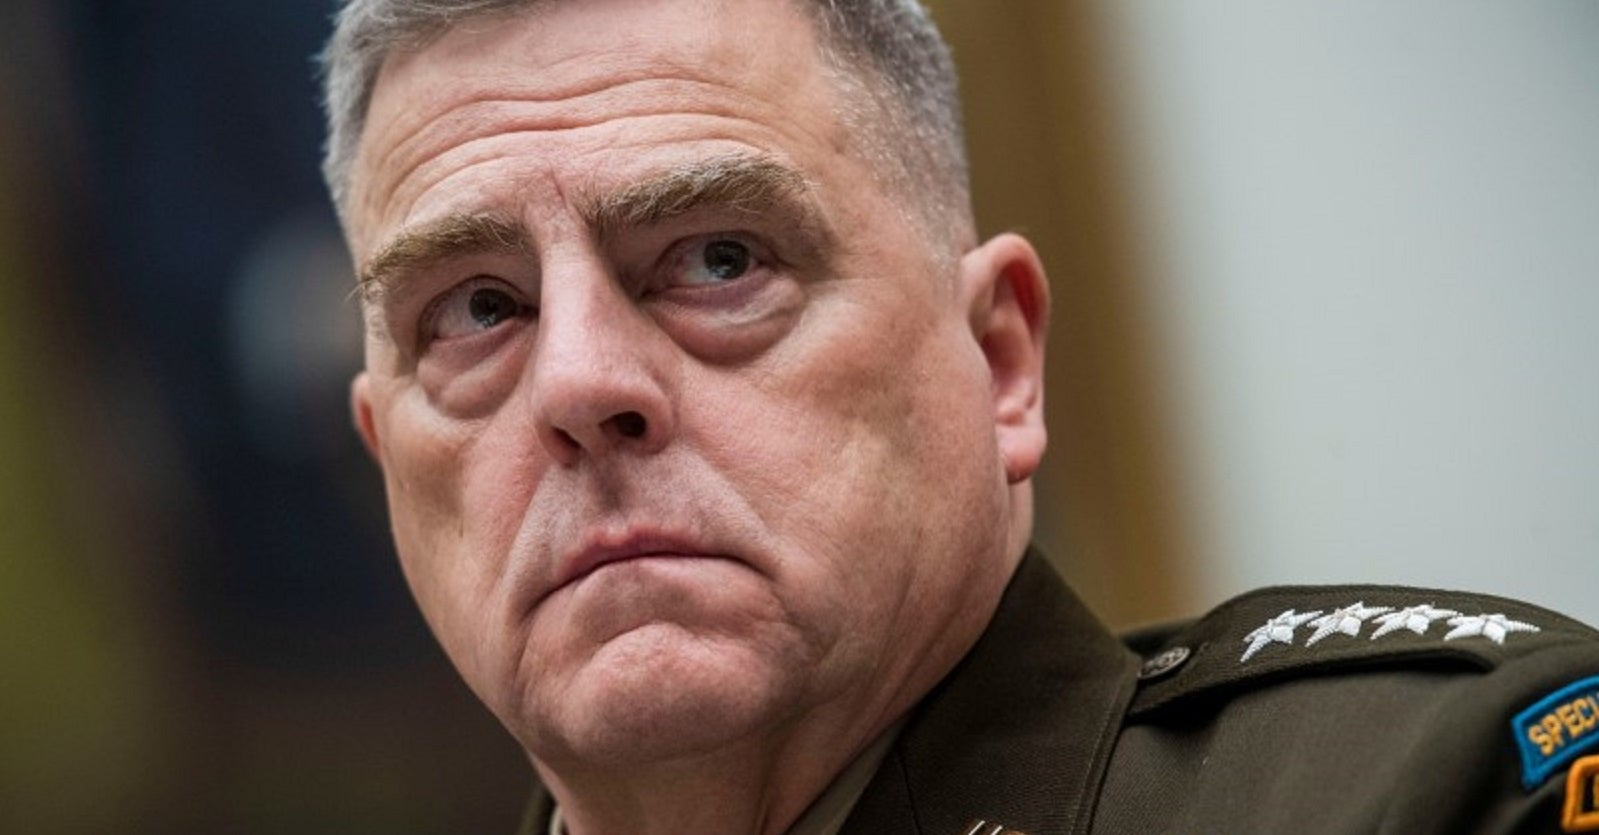 Top general appears to be at odds with the White House over the Afghanistan withdrawal plan